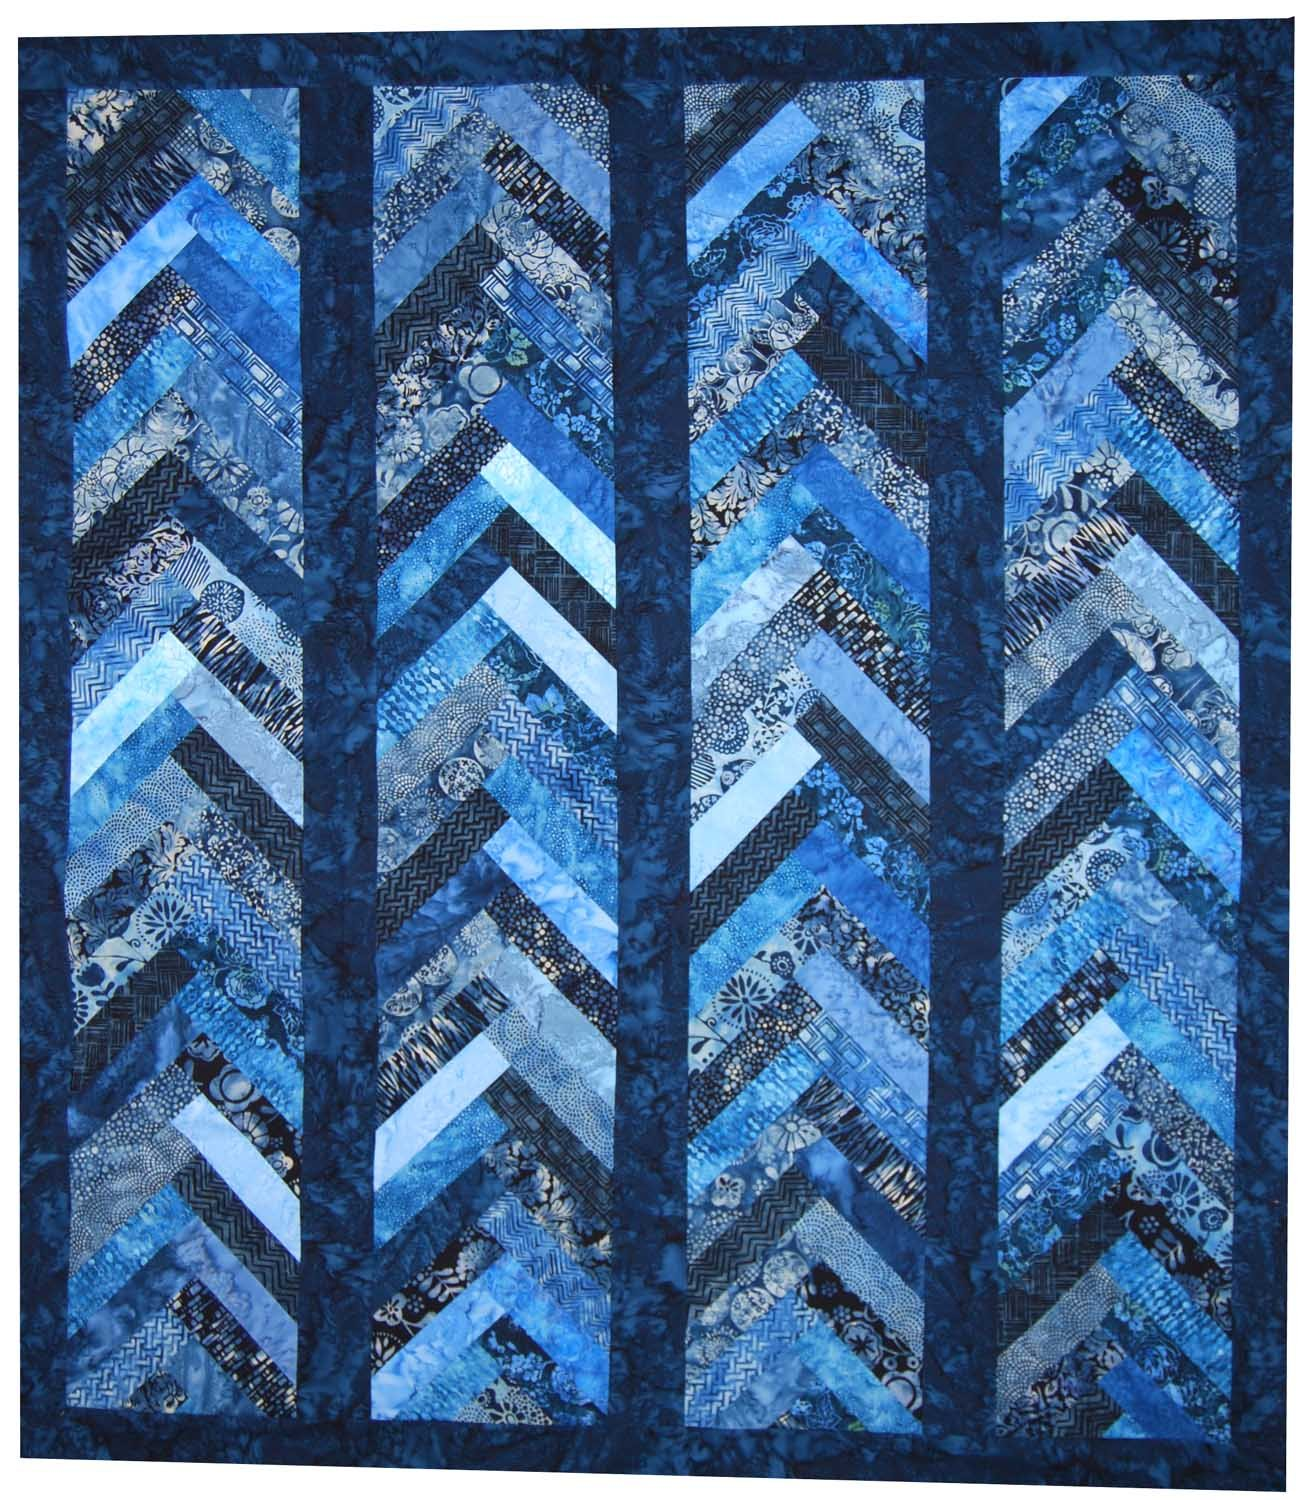 Burlington Braids : braid quilt pattern - Adamdwight.com